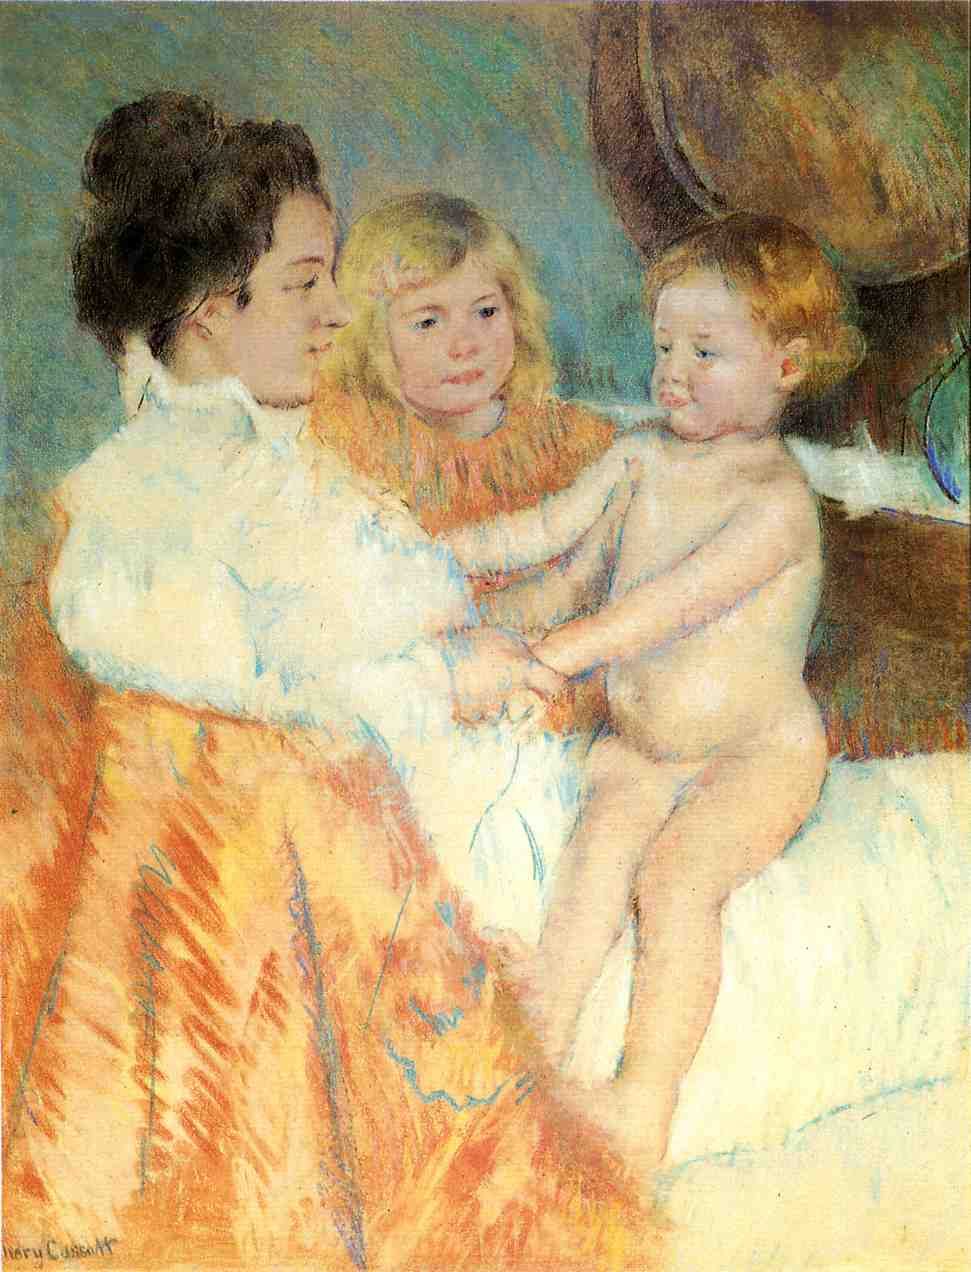 Mother Sara and the Baby (counterproof) 1901 | Mary Cassatt | Oil Painting